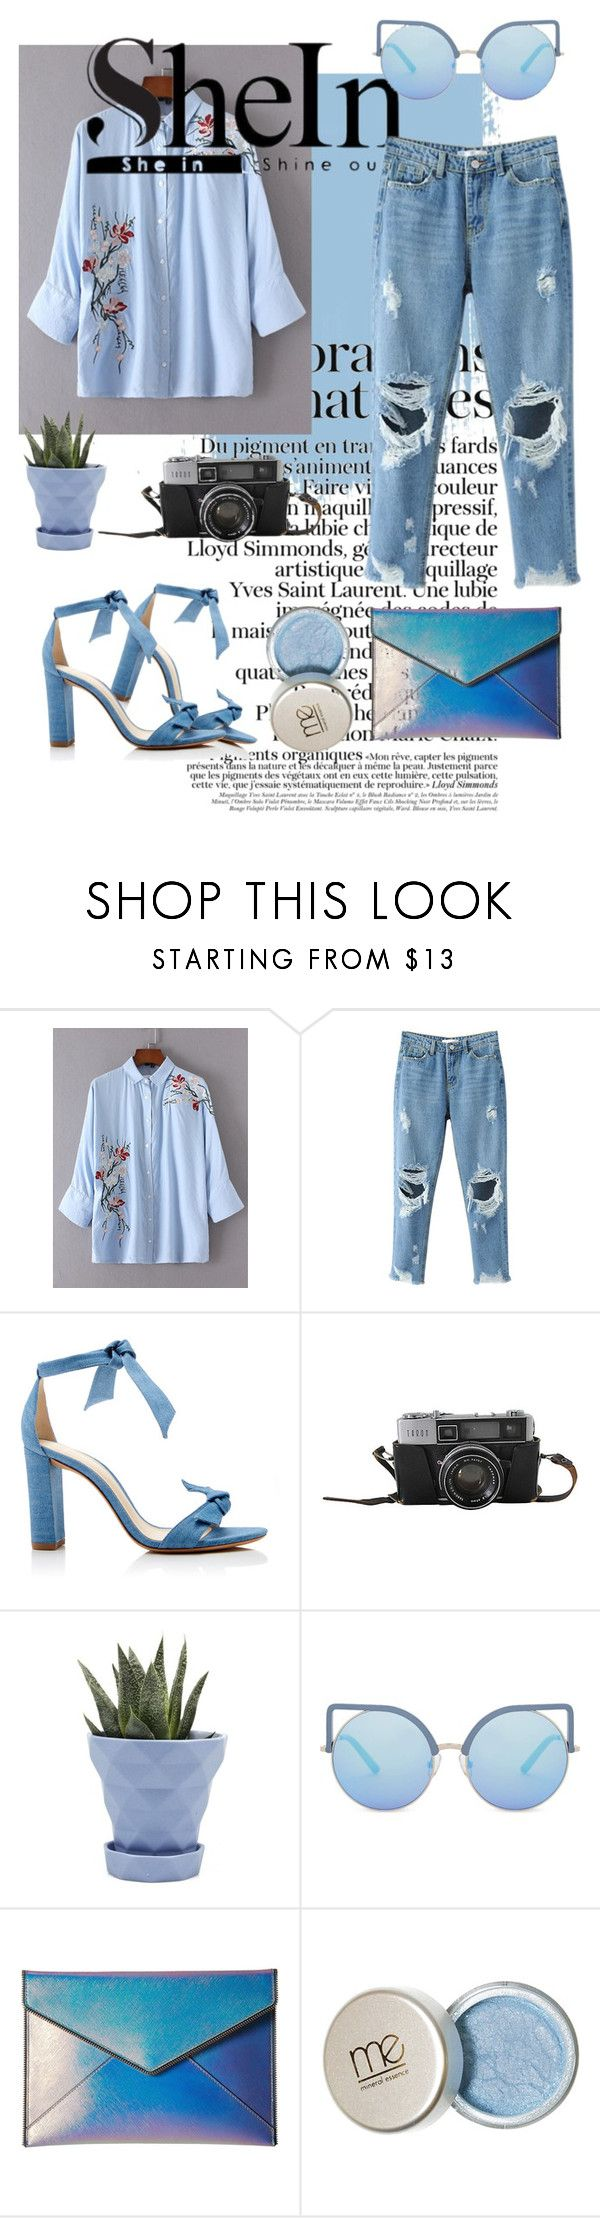 """""""Deep sea girl 💙💙"""" by viantiao ❤ liked on Polyvore featuring Alexandre Birman, Chive, Matthew Williamson and Rebecca Minkoff"""